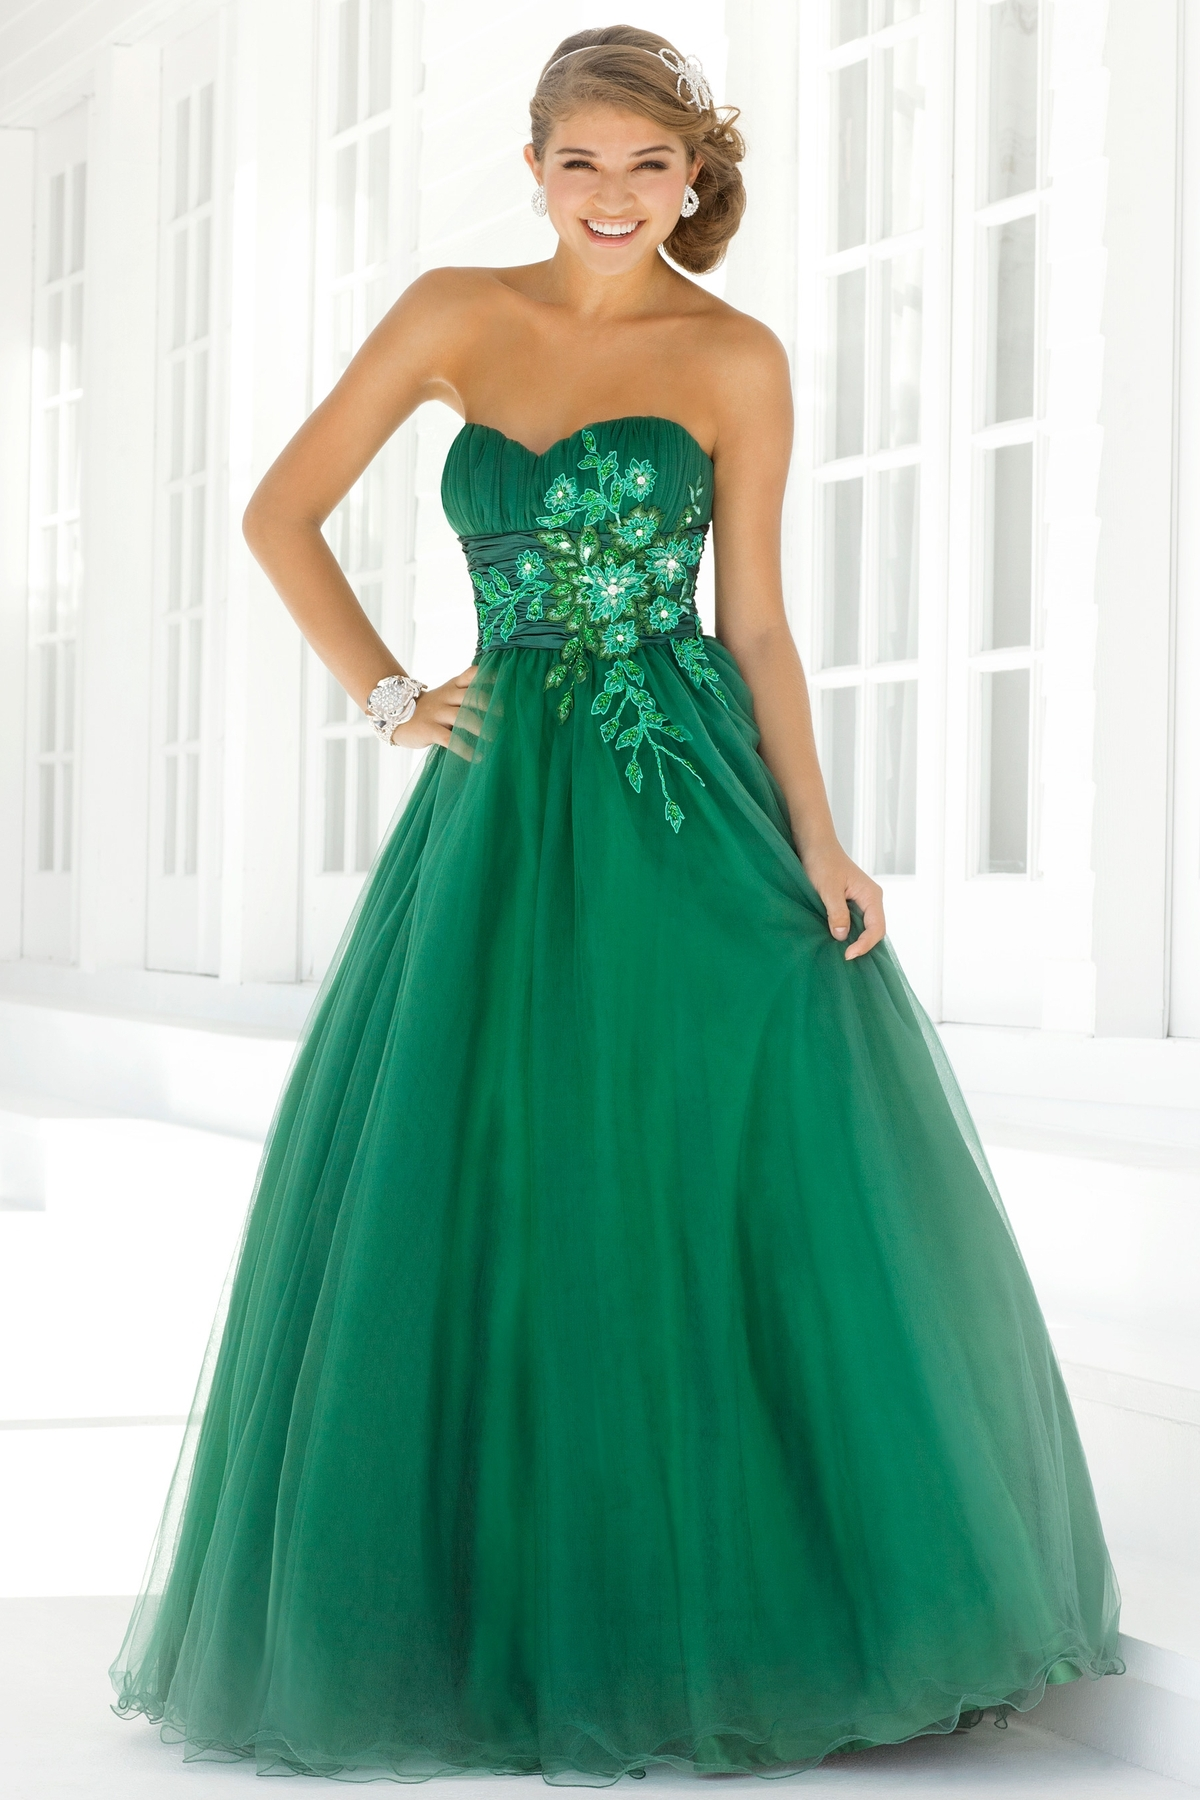 green prom gown | Fashion Wallpaper